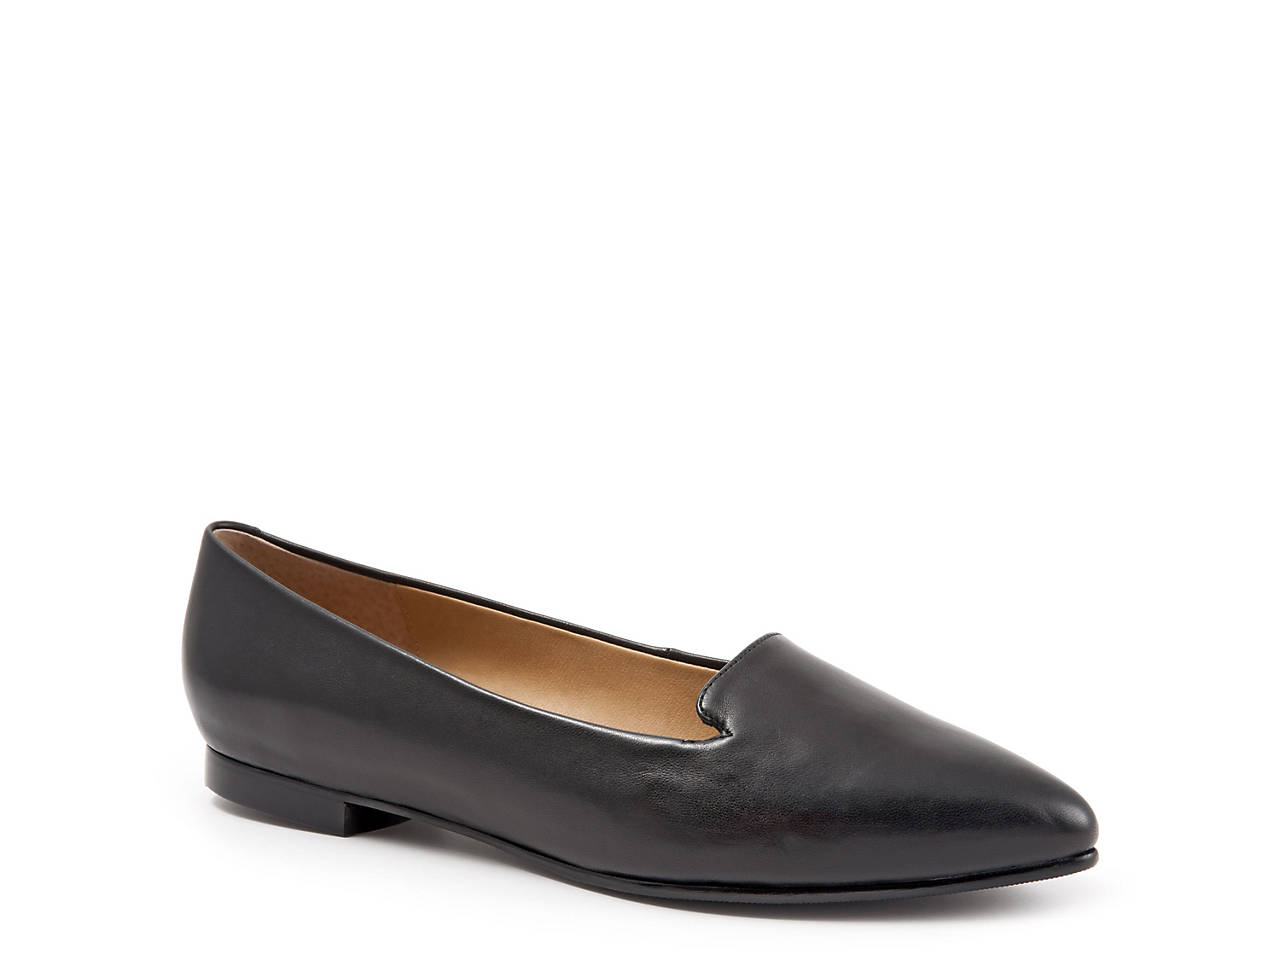 bd9e3bbfbe Trotters Harlowe Loafer Women s Shoes